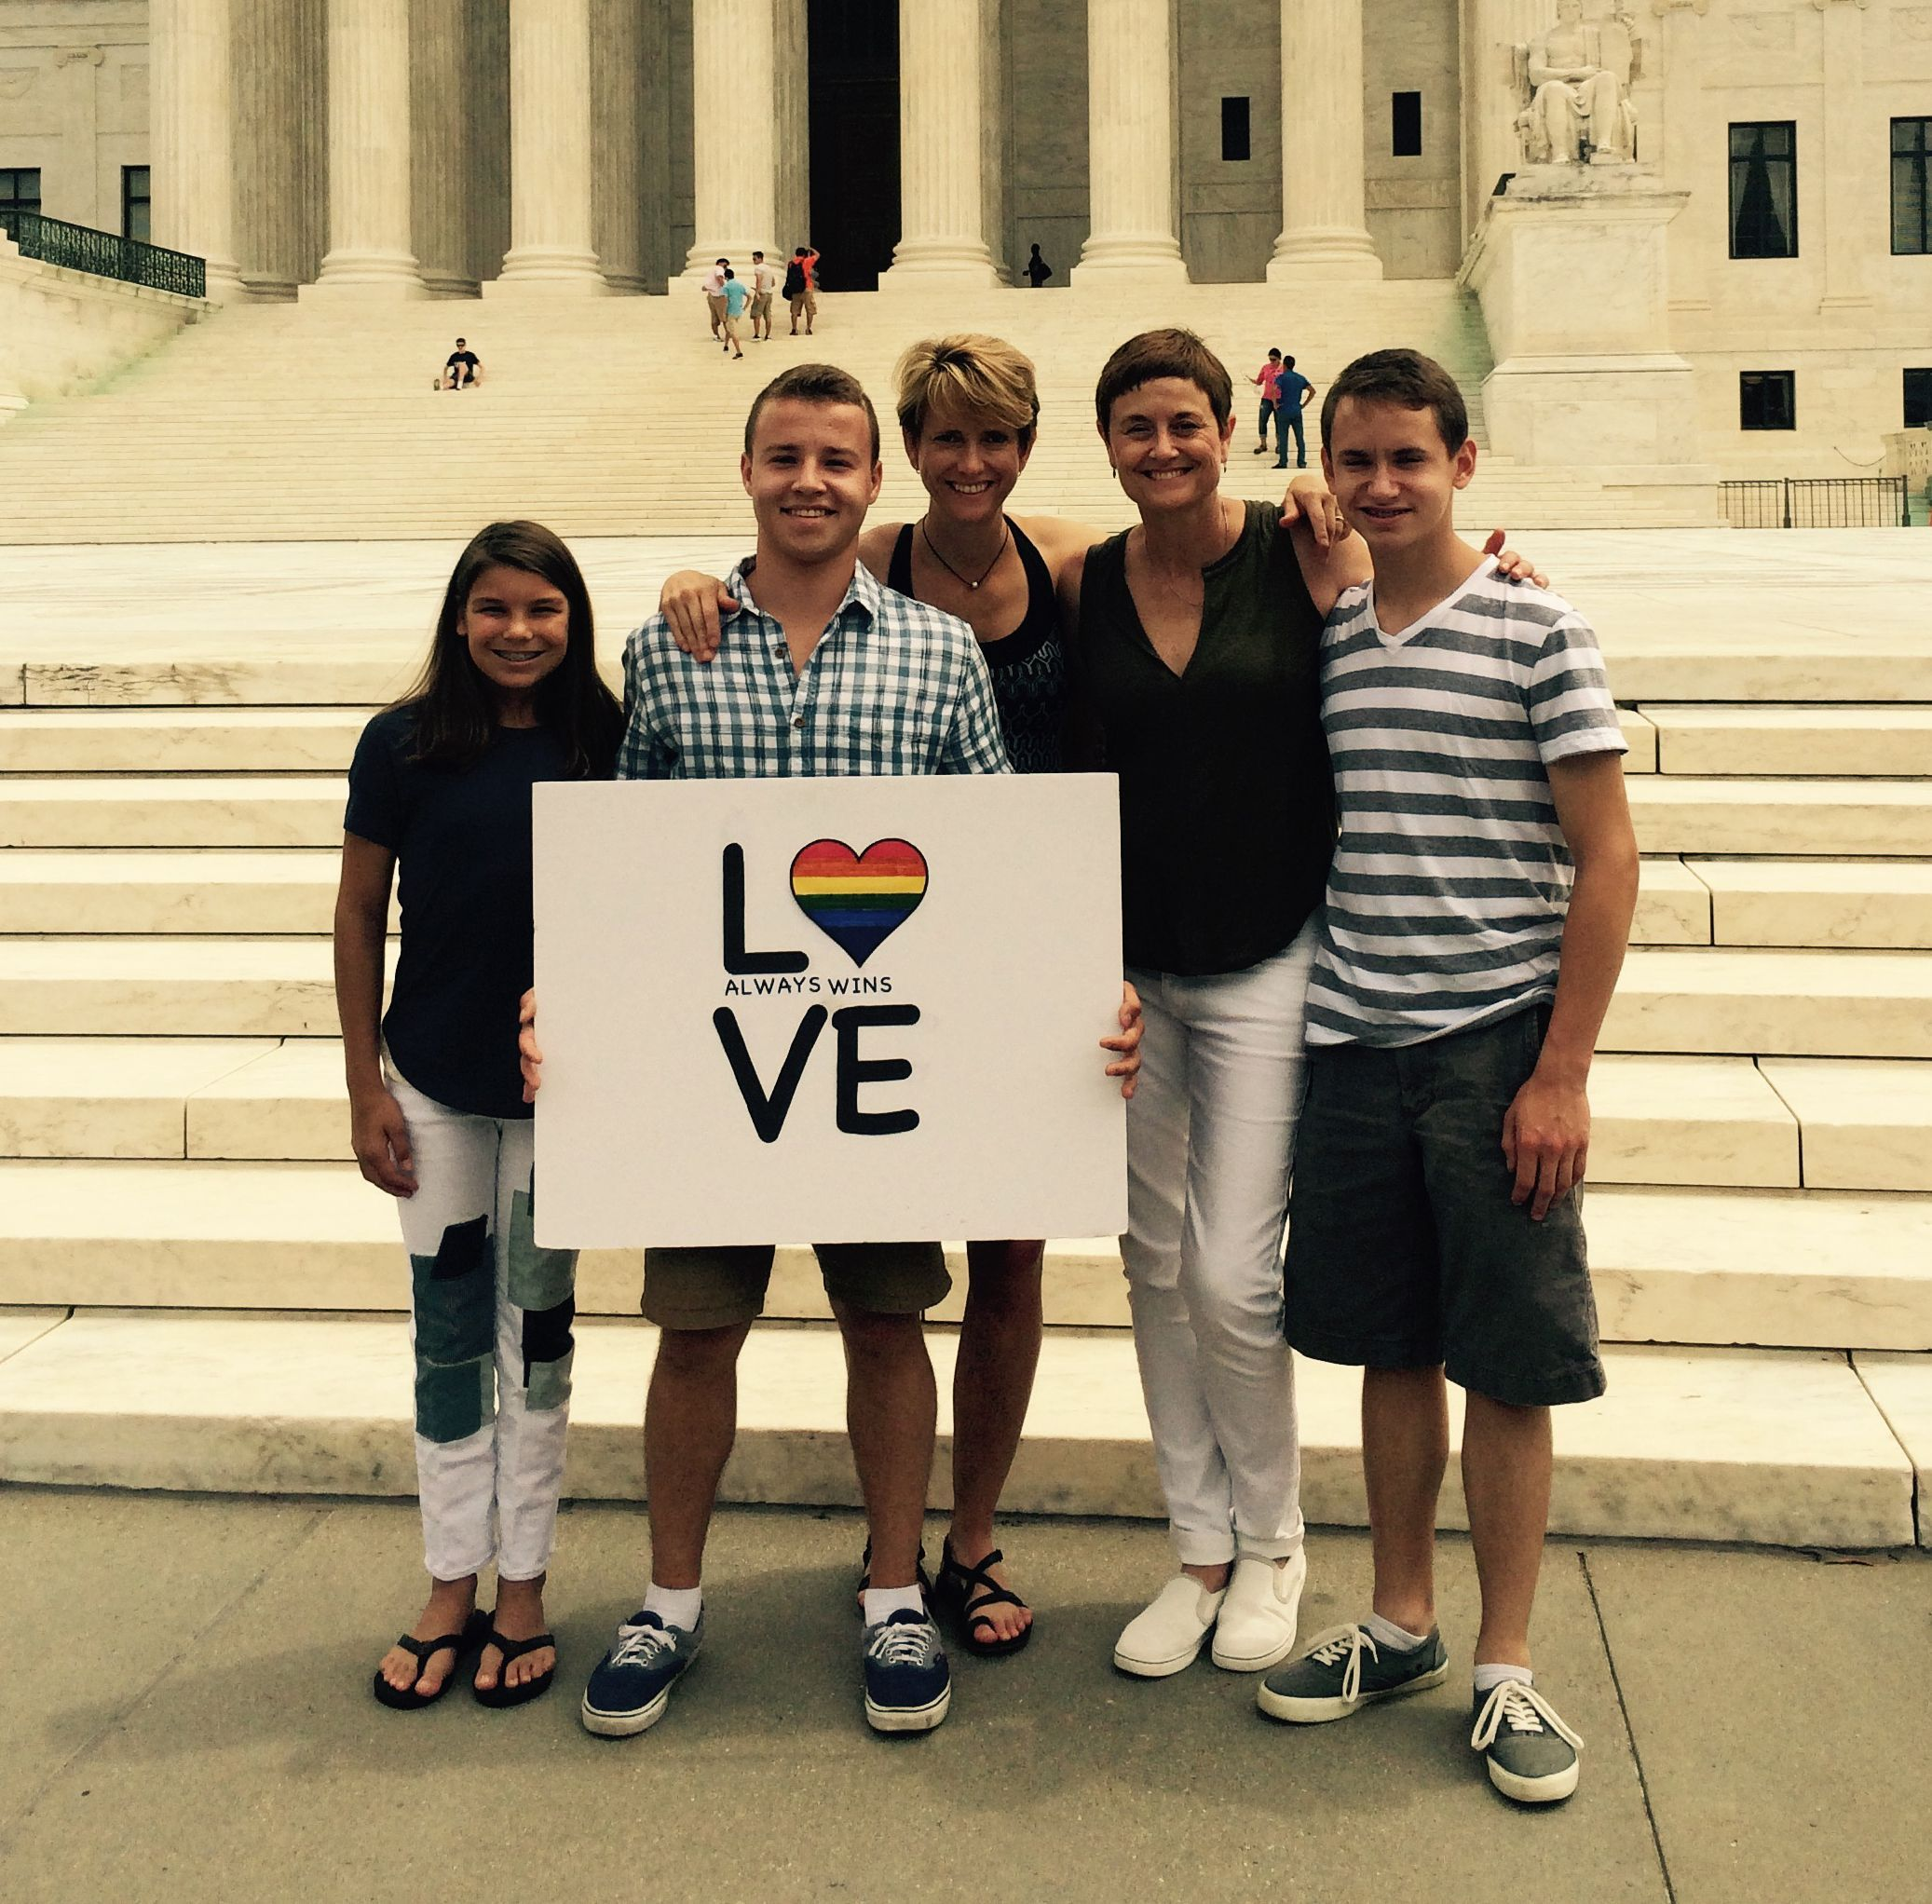 Family with pride sign in front of Supreme Court